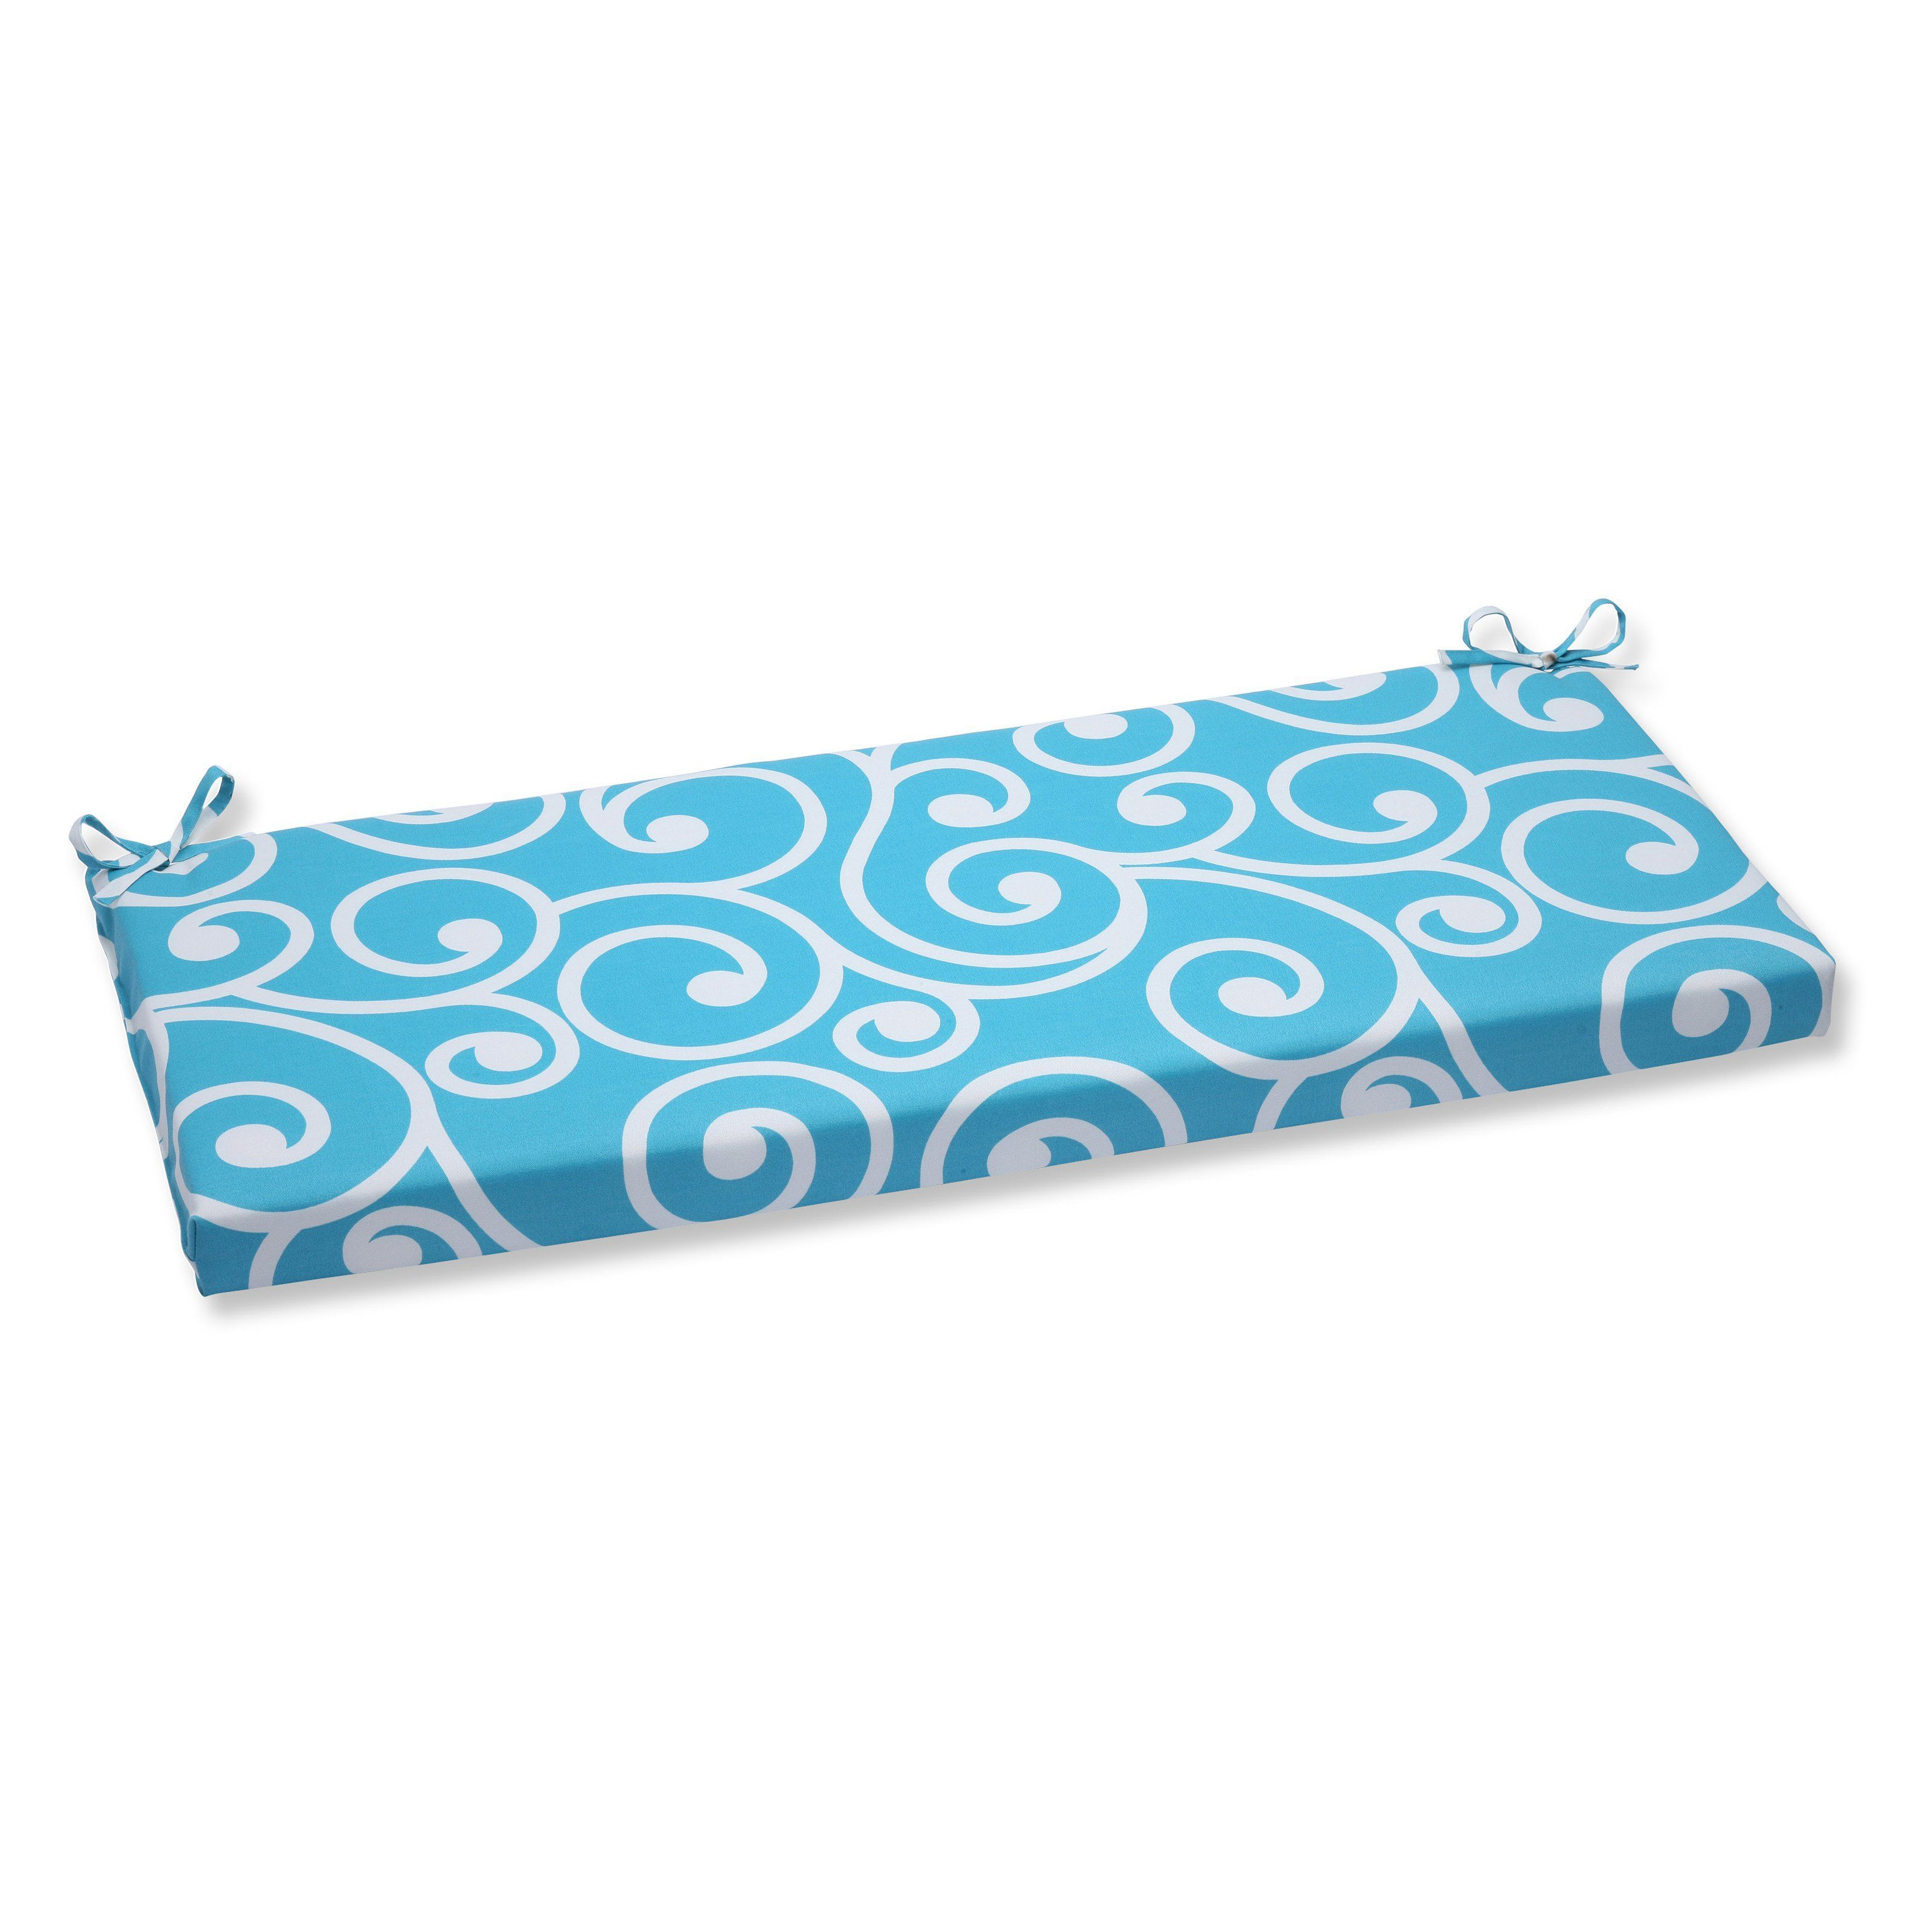 Pillow Perfect Best Swirl Turquoise 45 in Bench Cushion